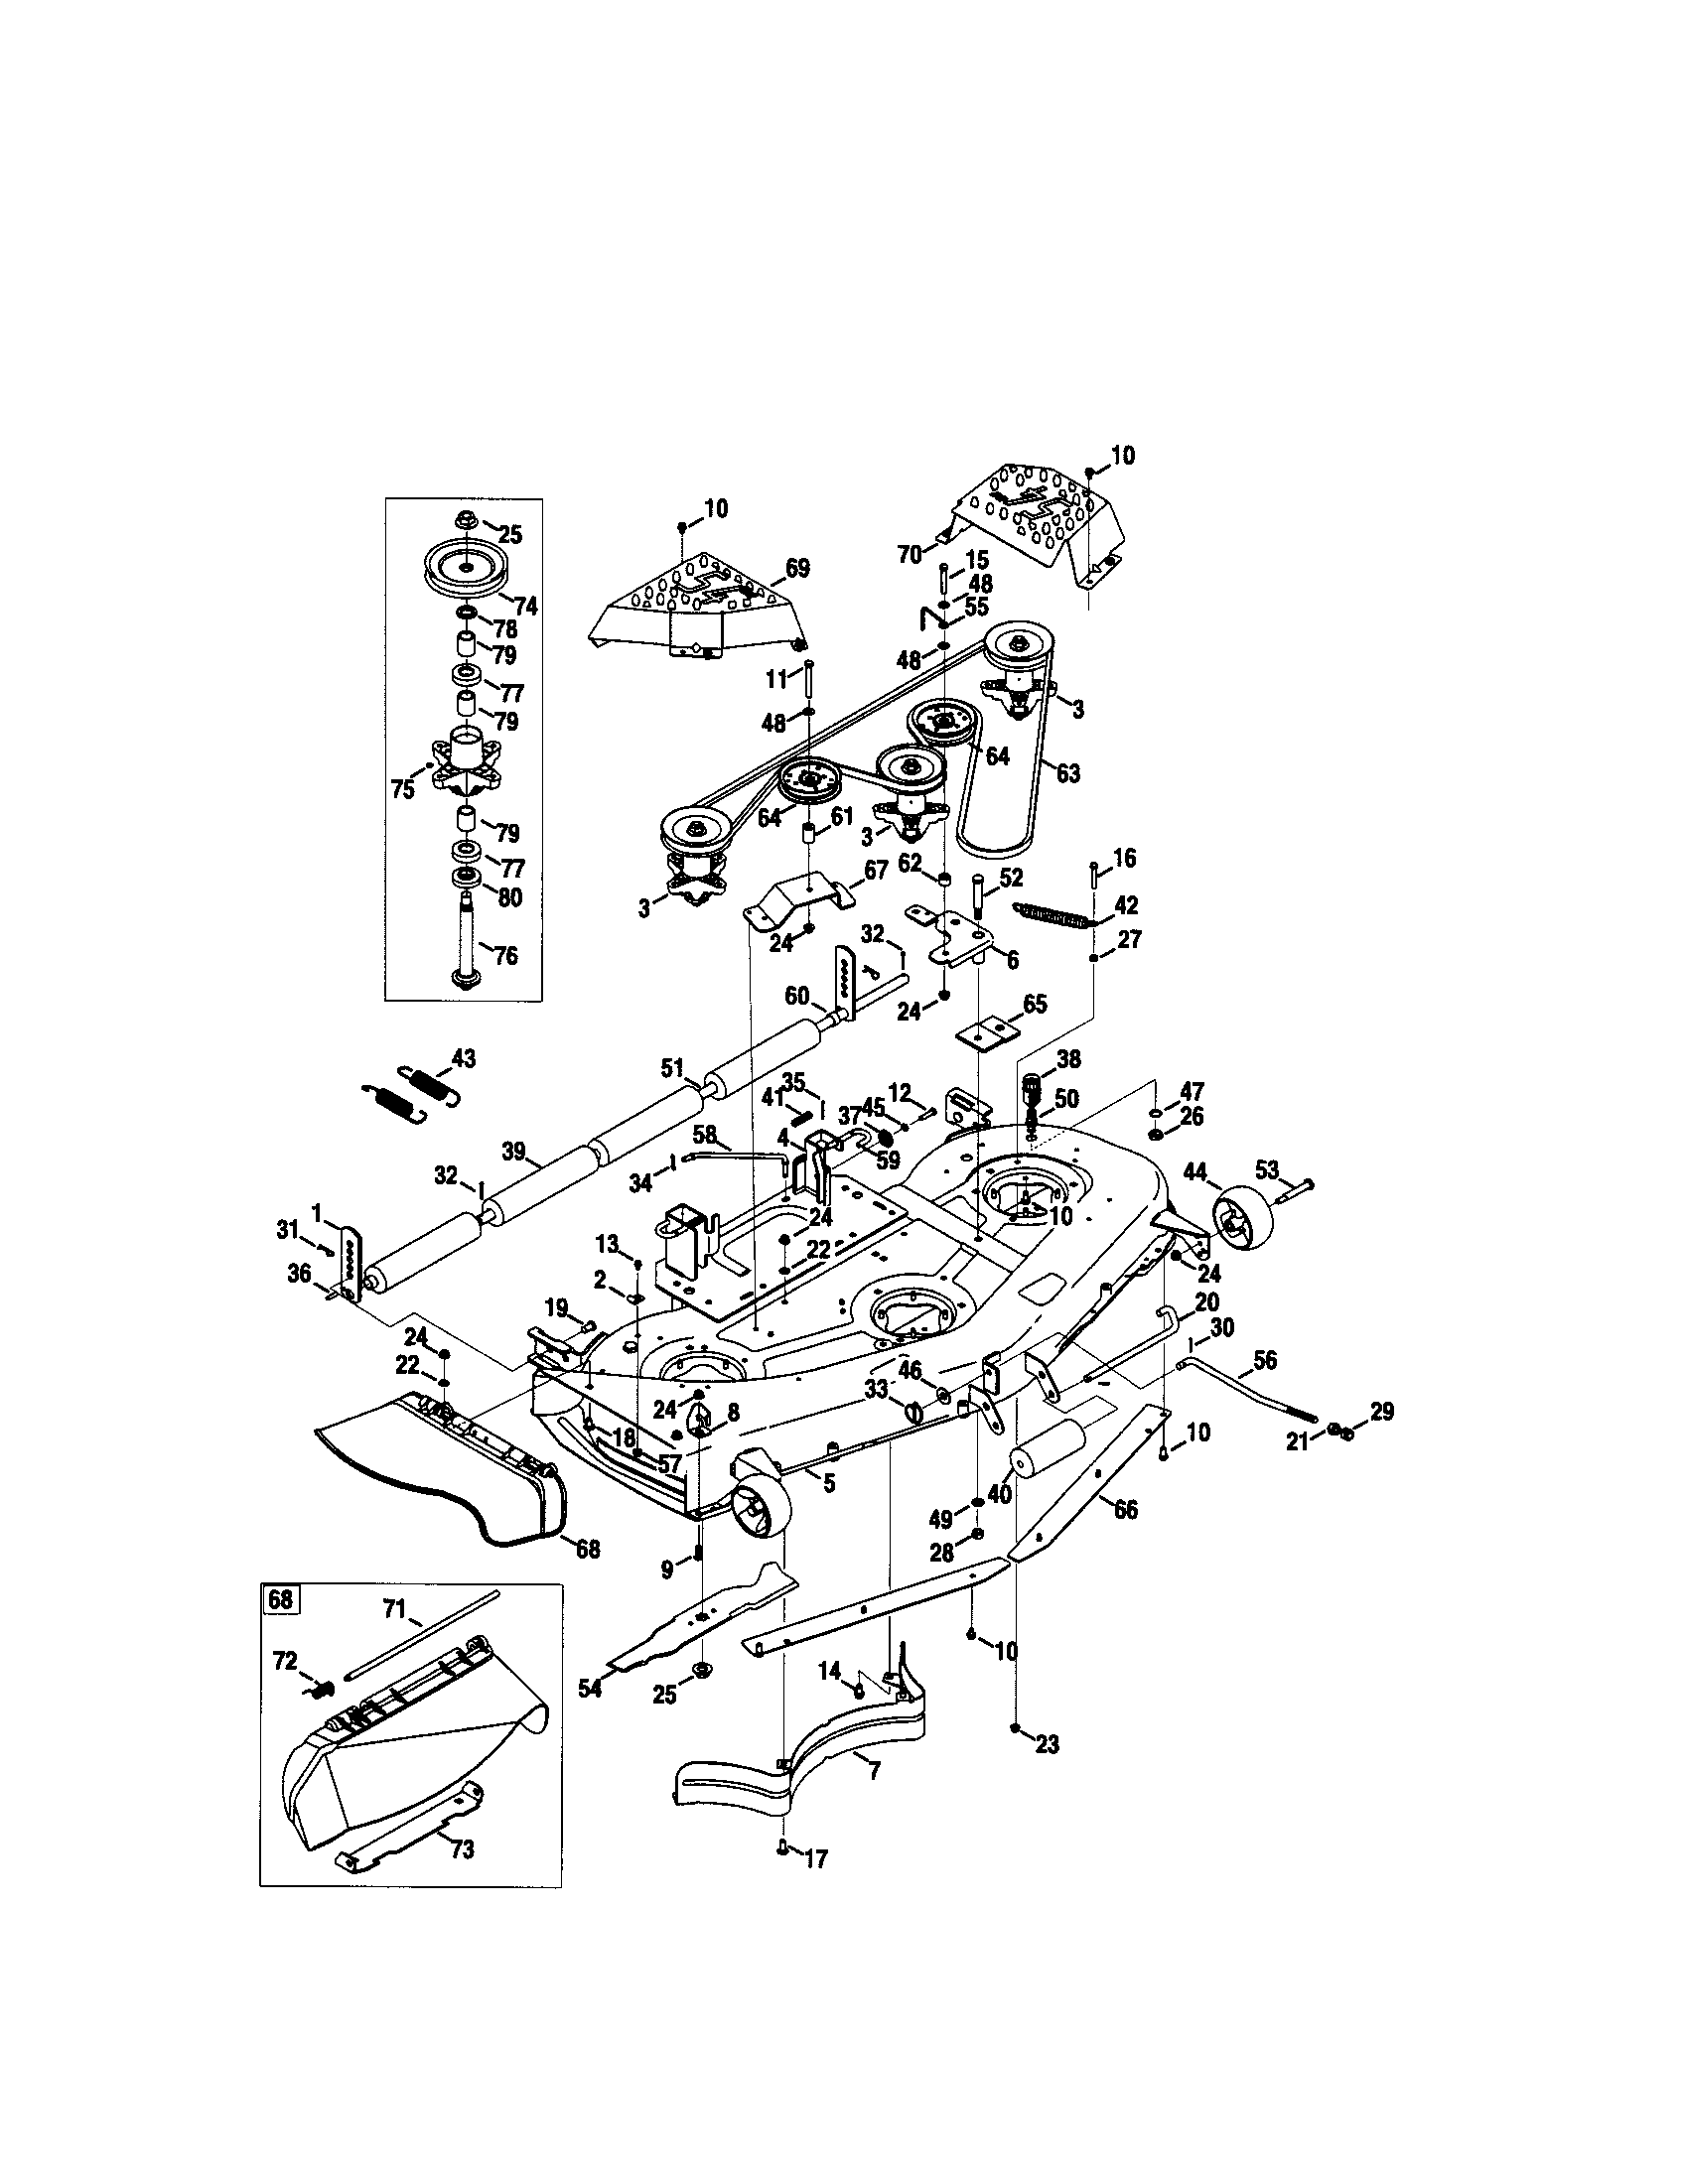 hight resolution of craftsman pgt9000 deck diagram